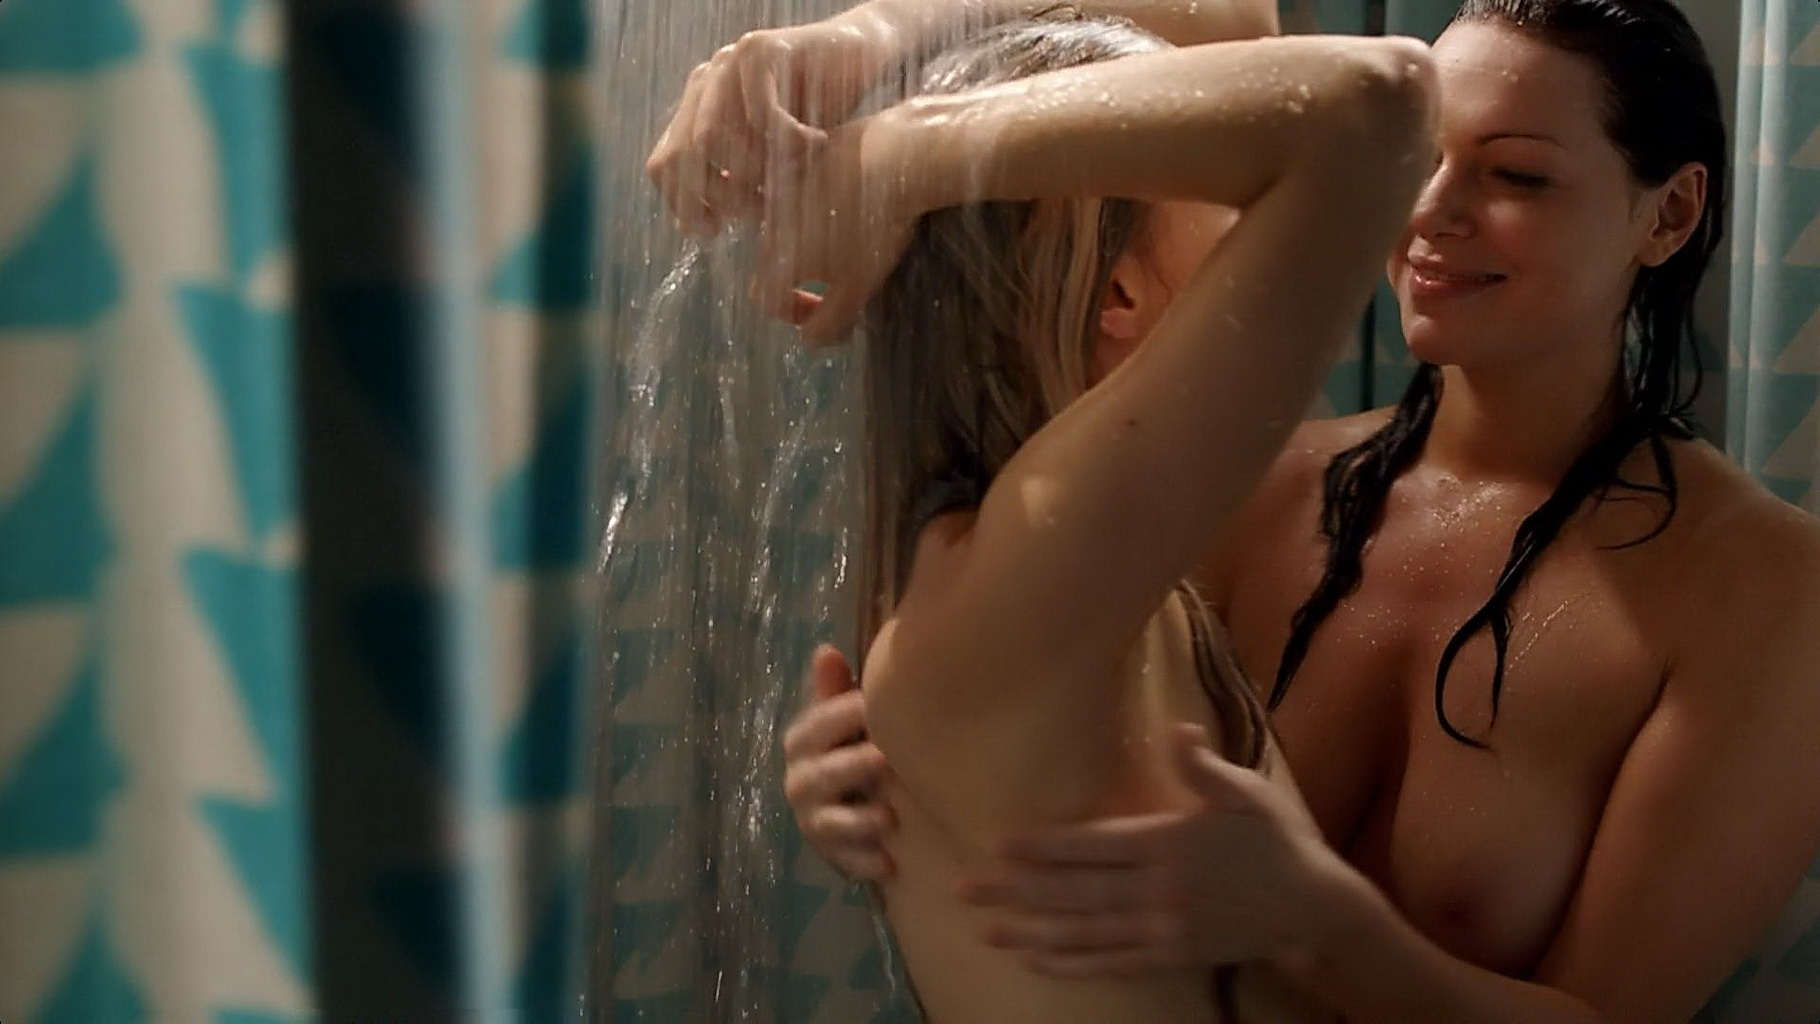 from Bryce nude fucking shower scenes